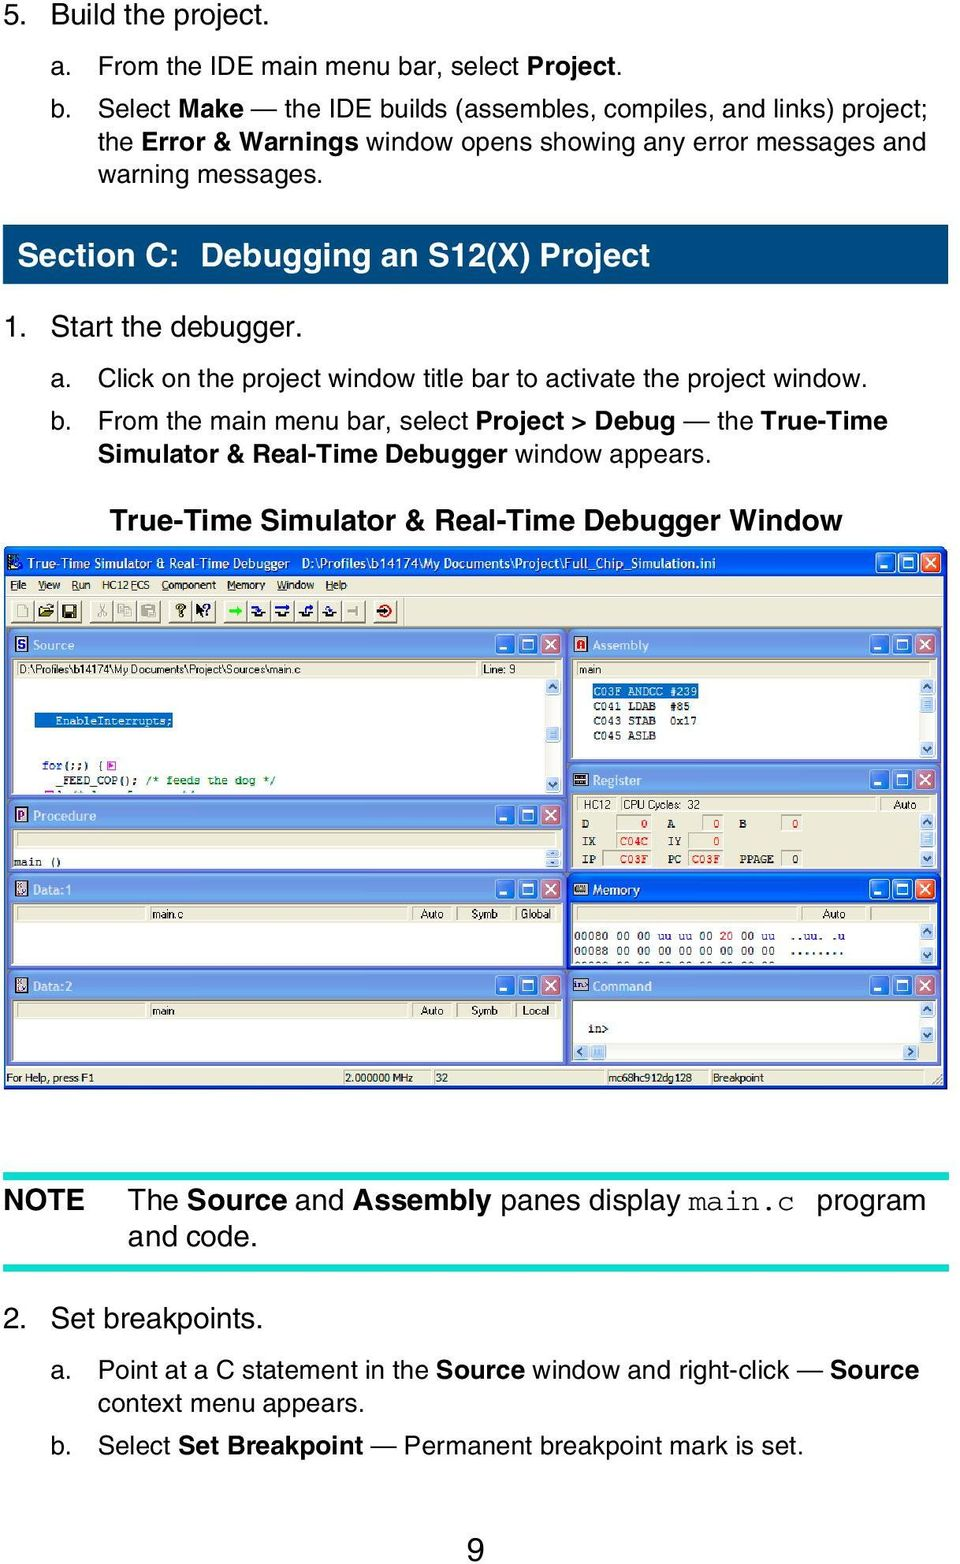 Section C: Debugging an S12(X) Project 1. Start the debugger. a. Click on the project window title ba